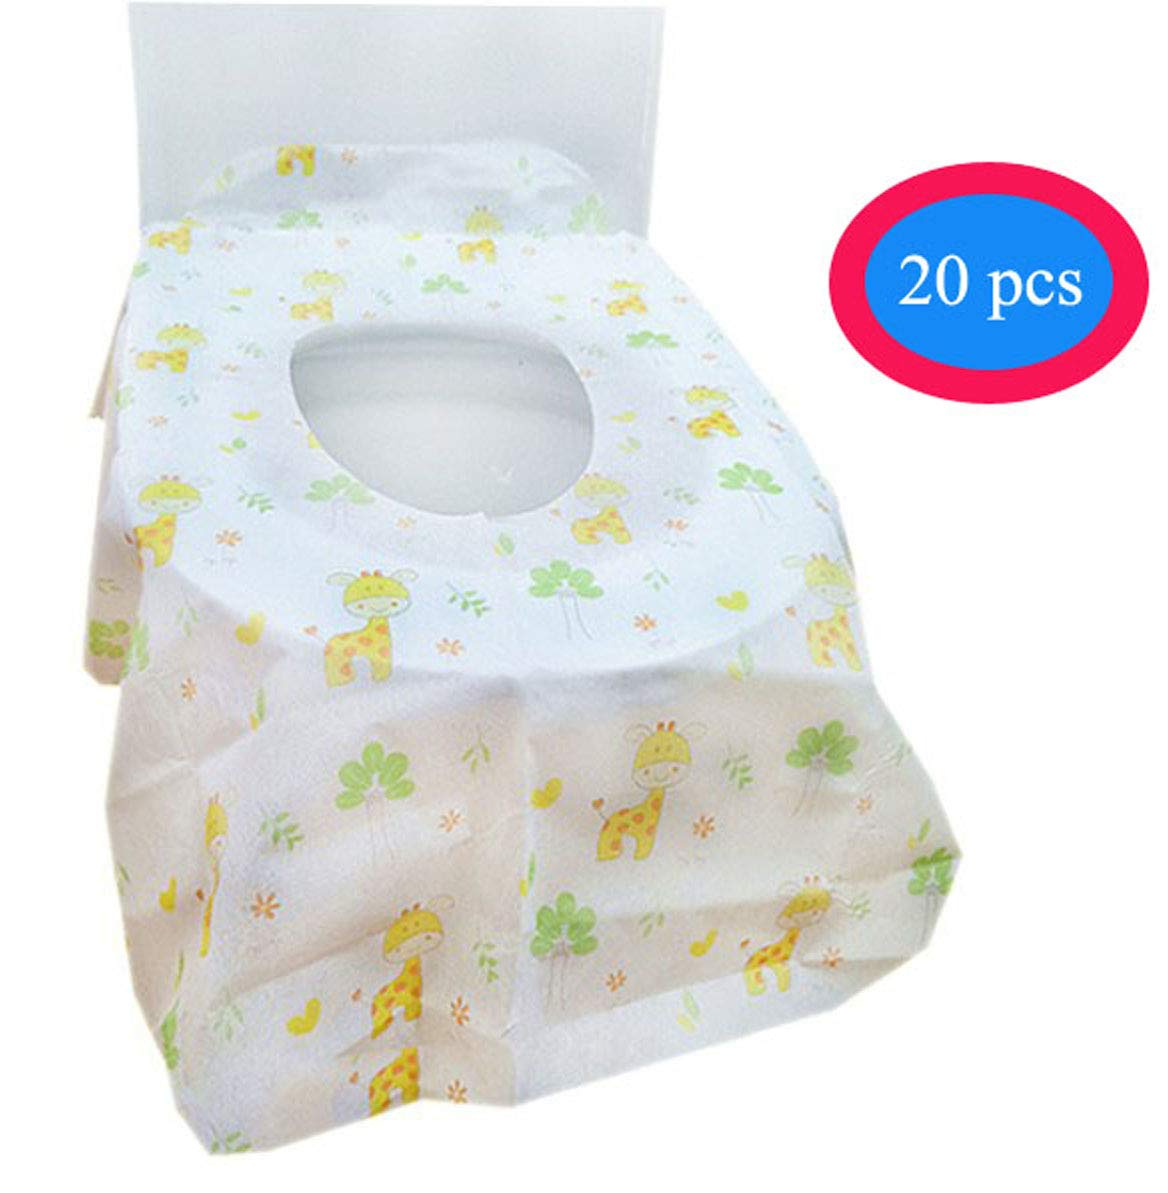 Toilet Seat Covers Disposable Disposable Toilet Seat Cover for Kids /& Elder /& Adult Pregnant Woman Travel Potty Training with Individually Wrapped Home Travel Use